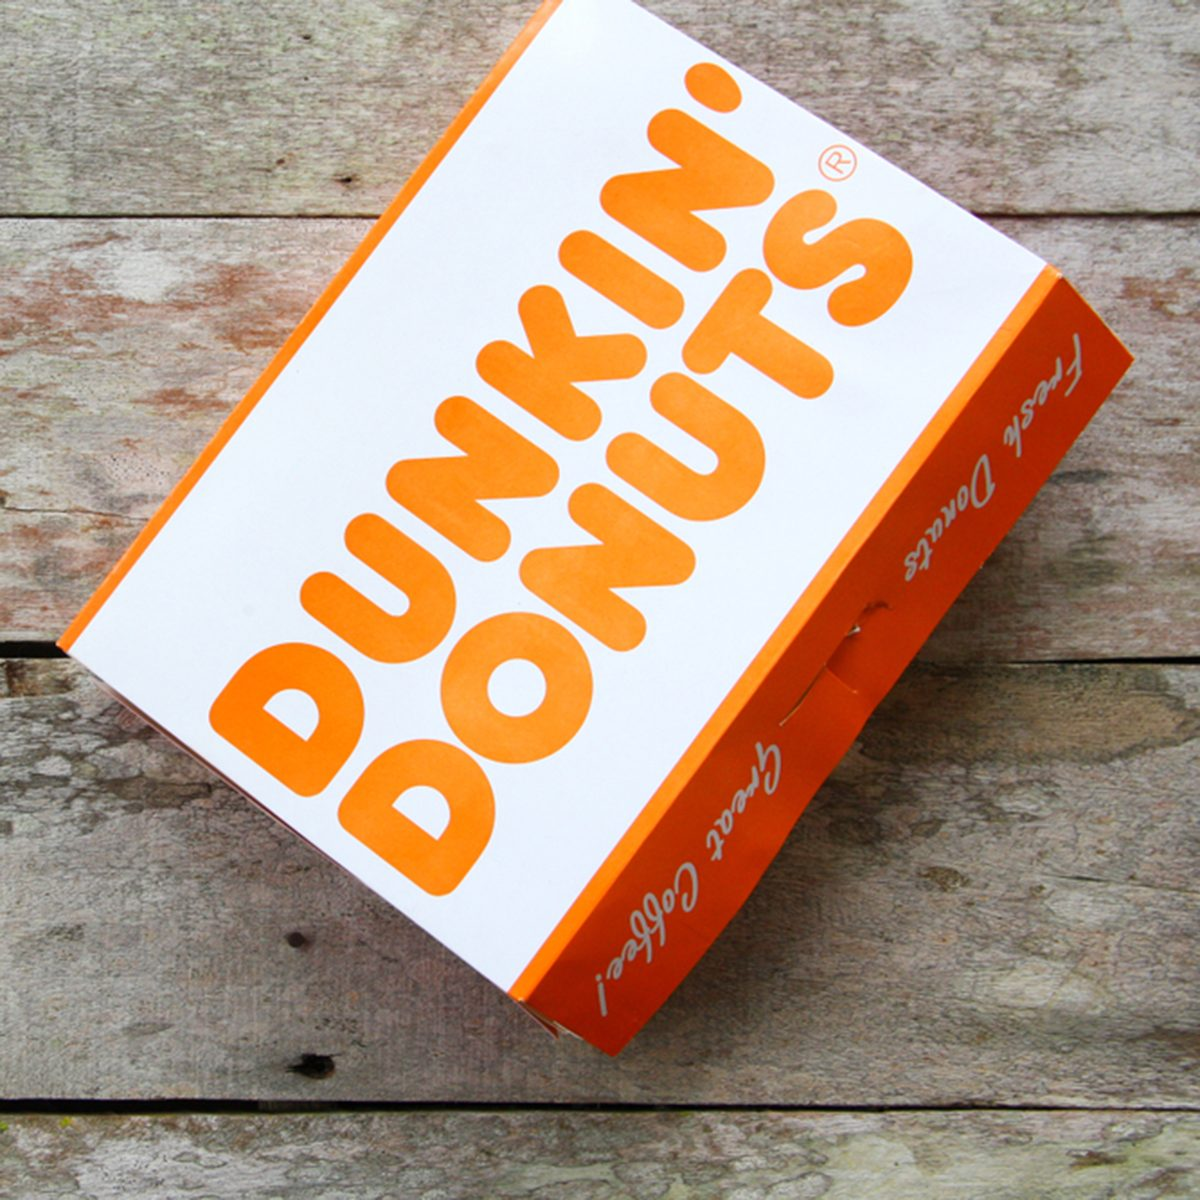 Dunkin' Donuts is an American global donut company and famous branding fast food.